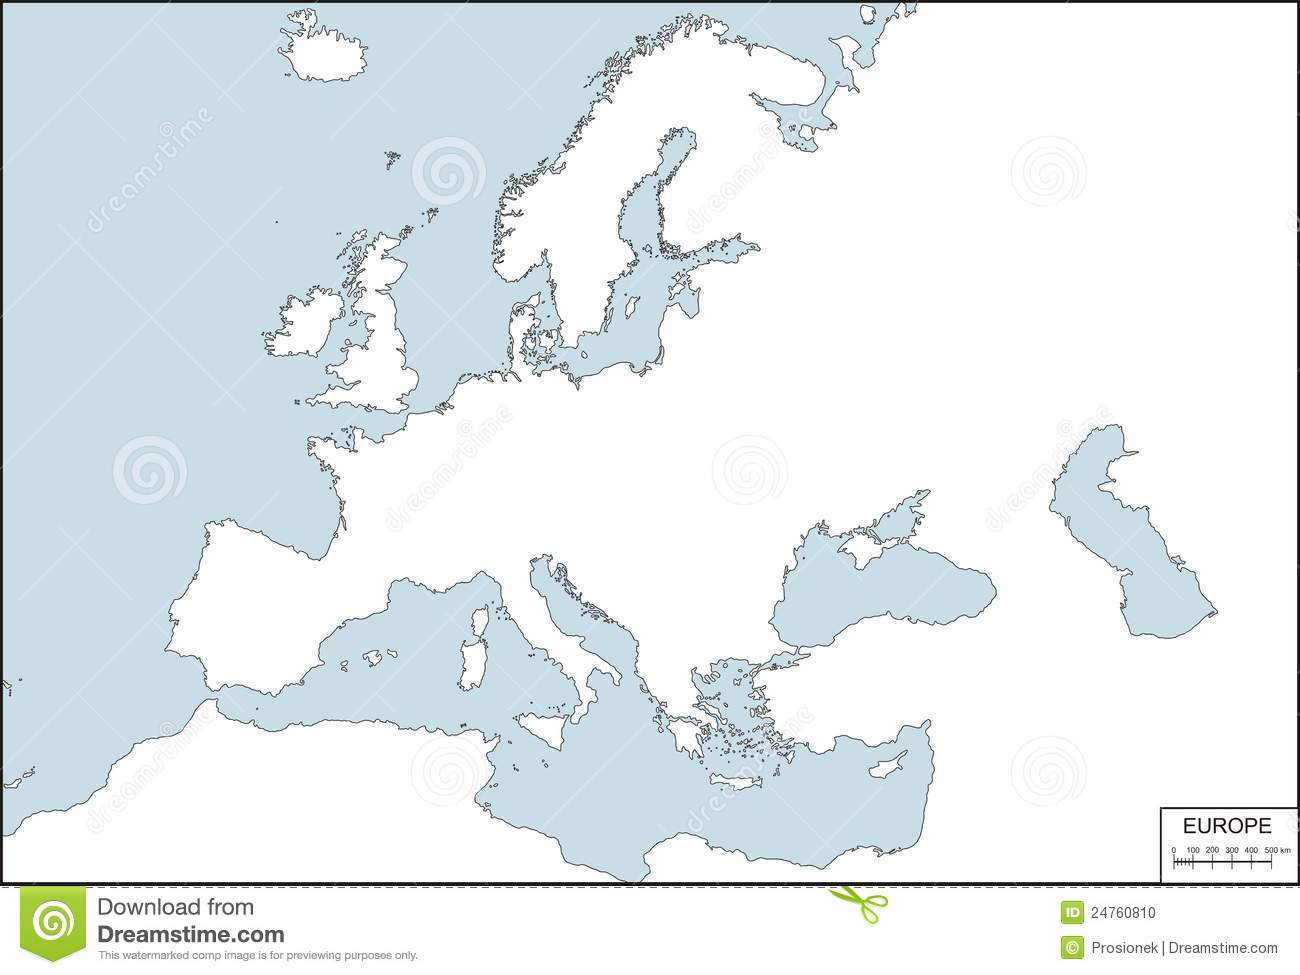 vector illustration of europe - photo #23